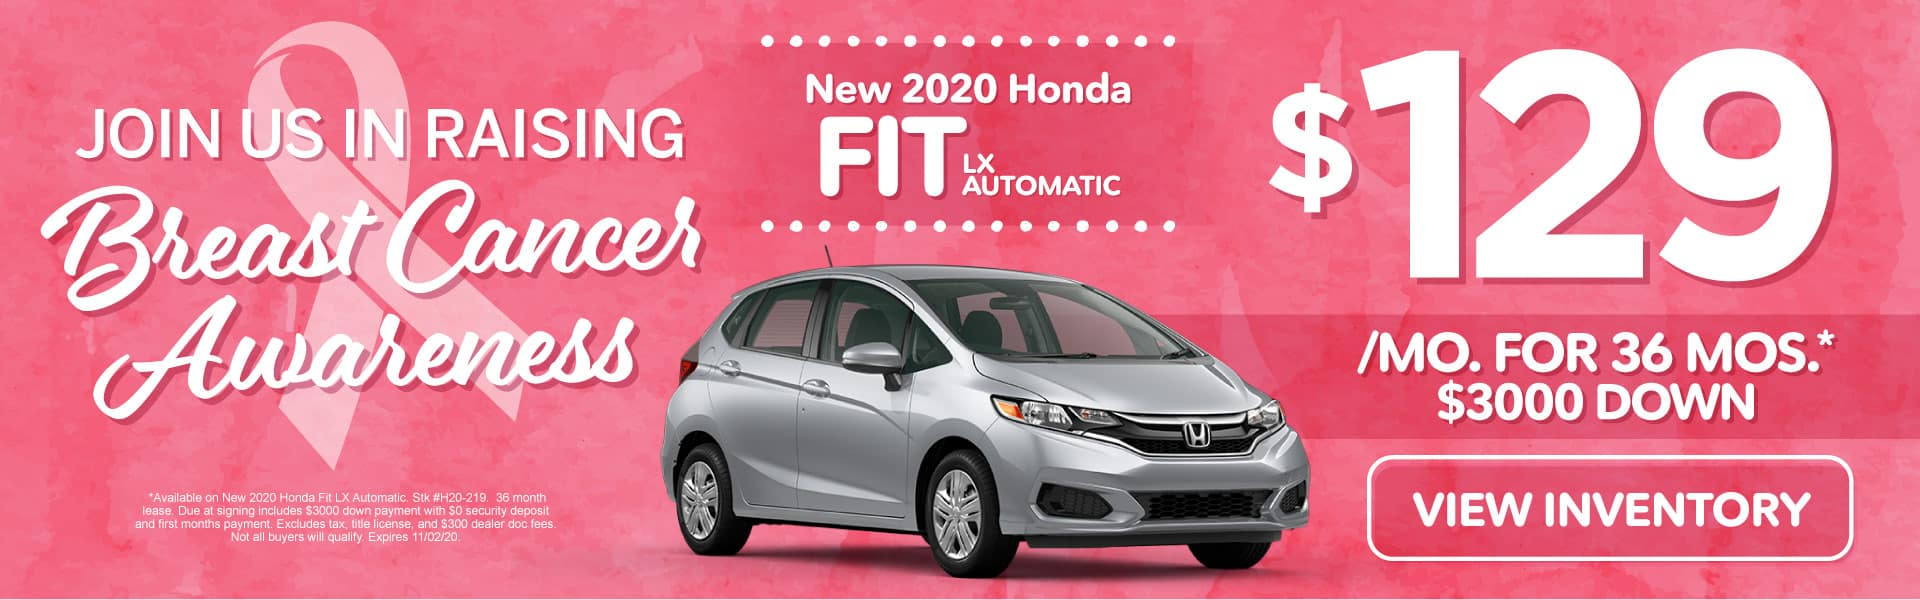 New 2020 Honda Fit | Lease for $129 a month | Click to View Inventory